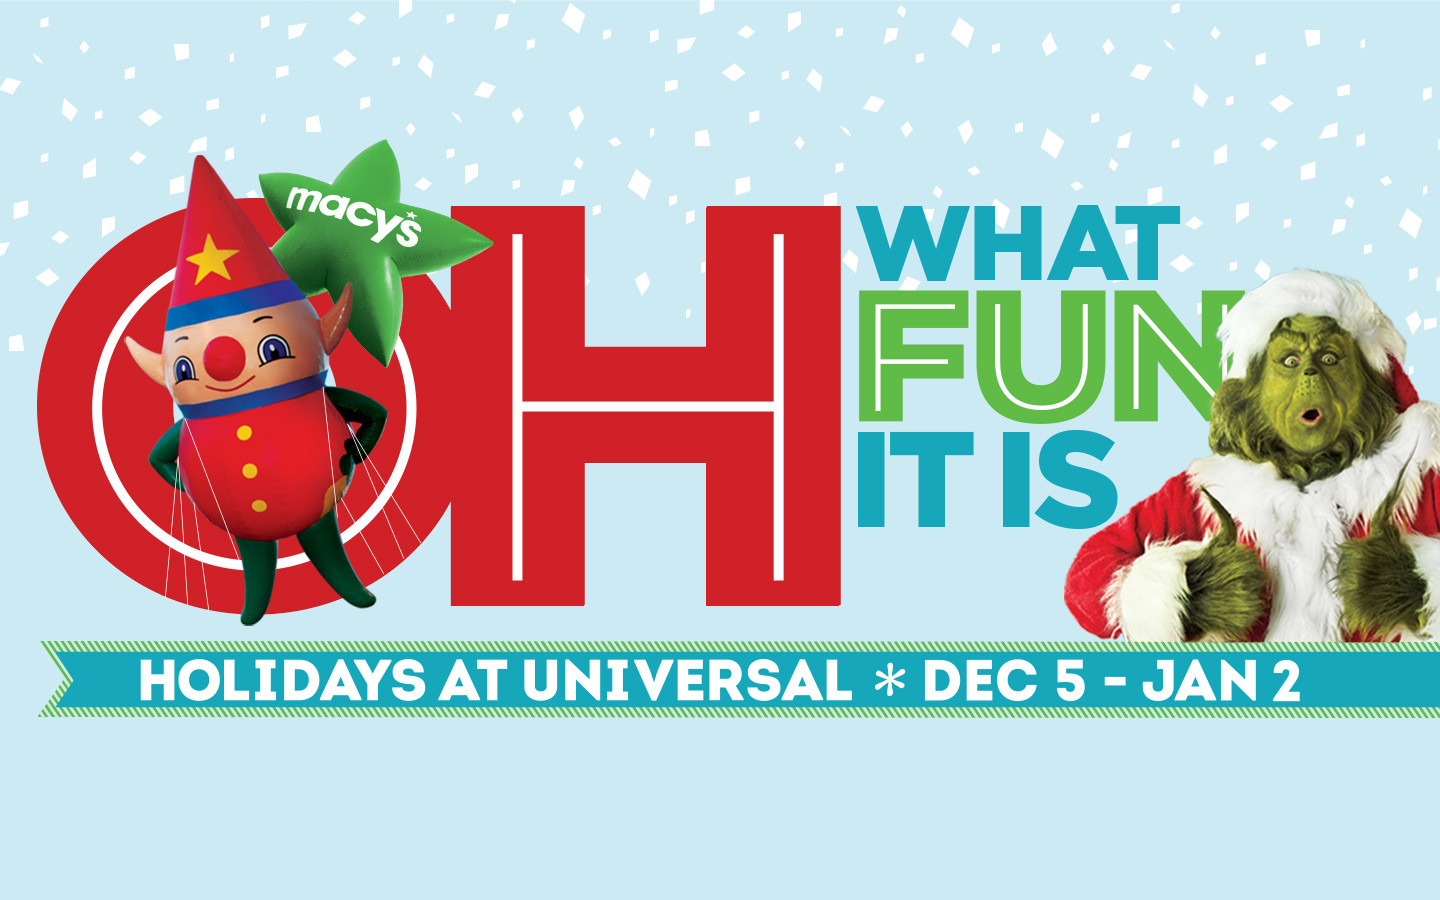 Spend your Holiday's at Universal Orlando Resort